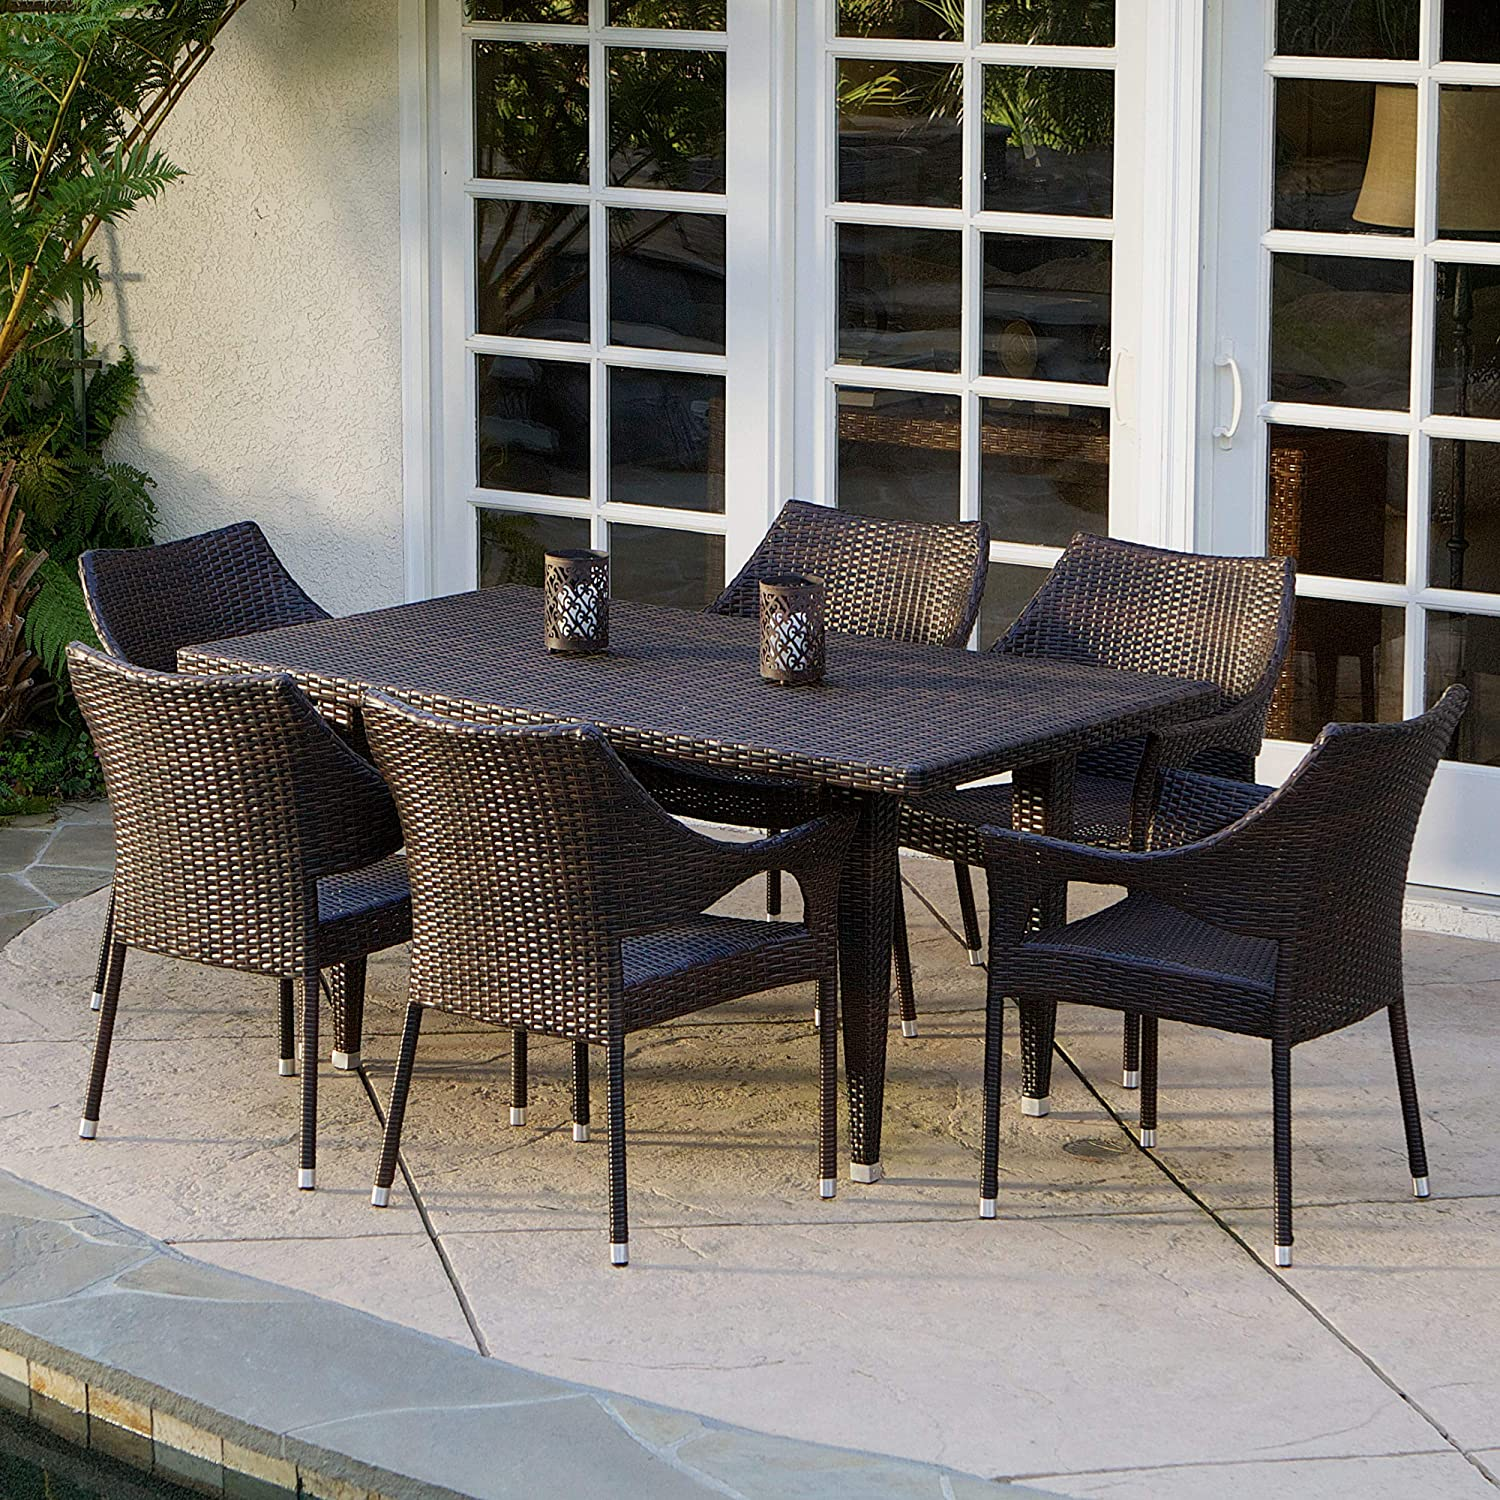 Brown Christopher Knight Home 235369 Stacking Wicker Chairs 7-Piece Outdoor Dining Set